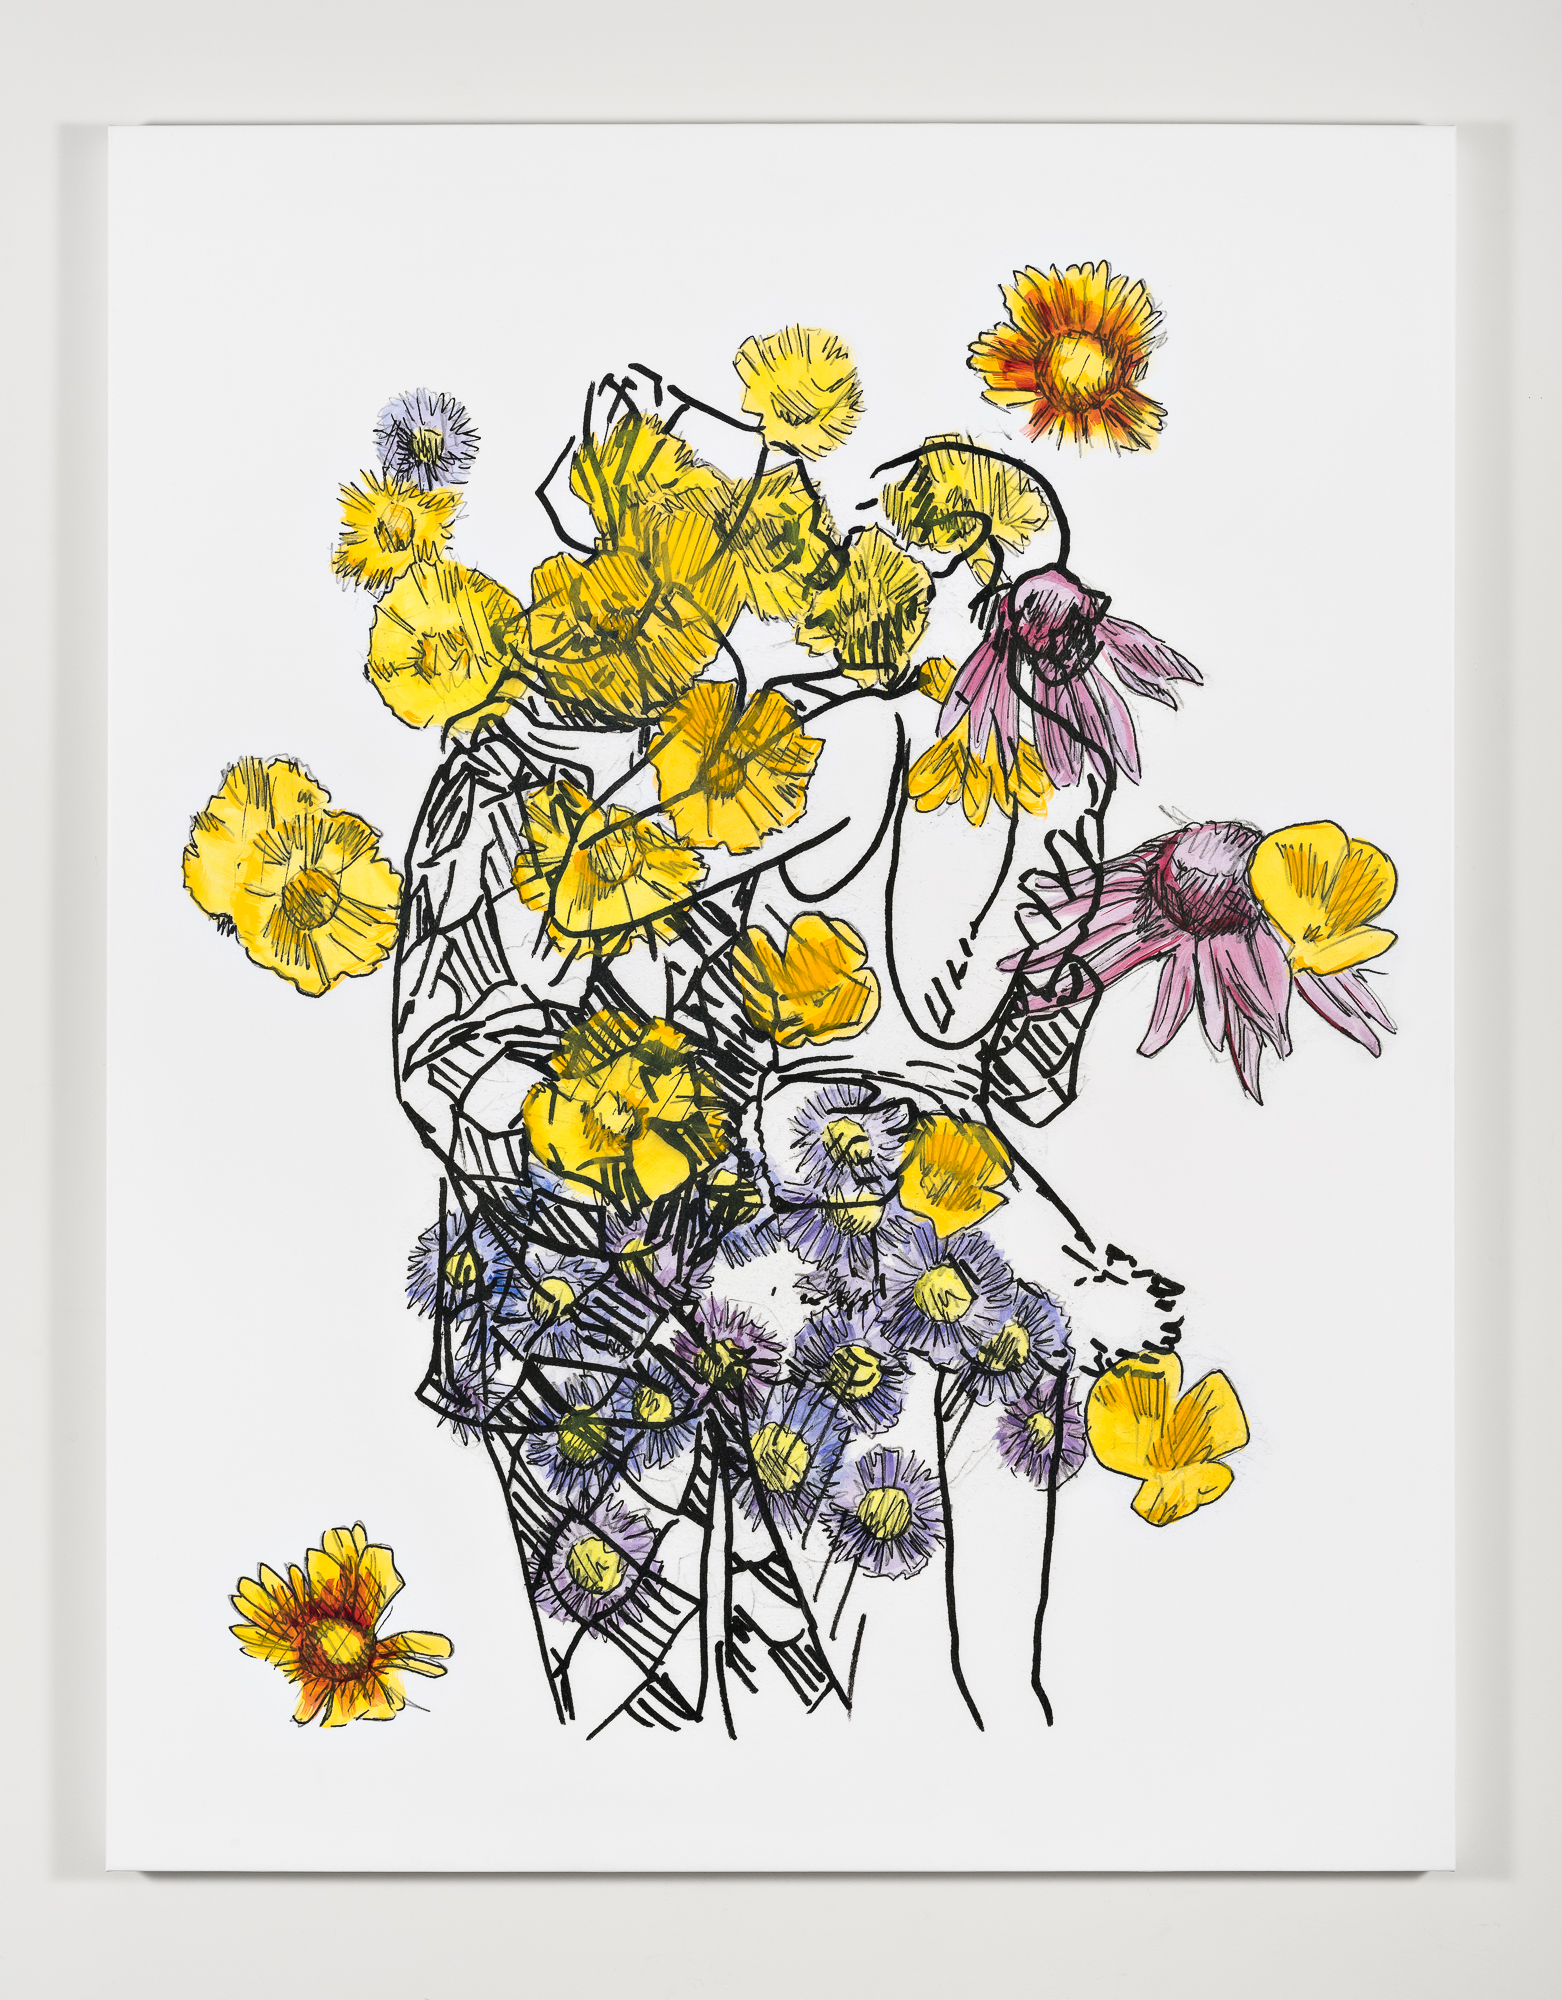 "Mieke Marple,  Eternal (Kiss/Wildflowers) , 2019, Acrylic paint and inkjet on canvas, 70 x 54 x 2"" [HxWxD] (177.8 x 137.16 x 5.08 cm)"